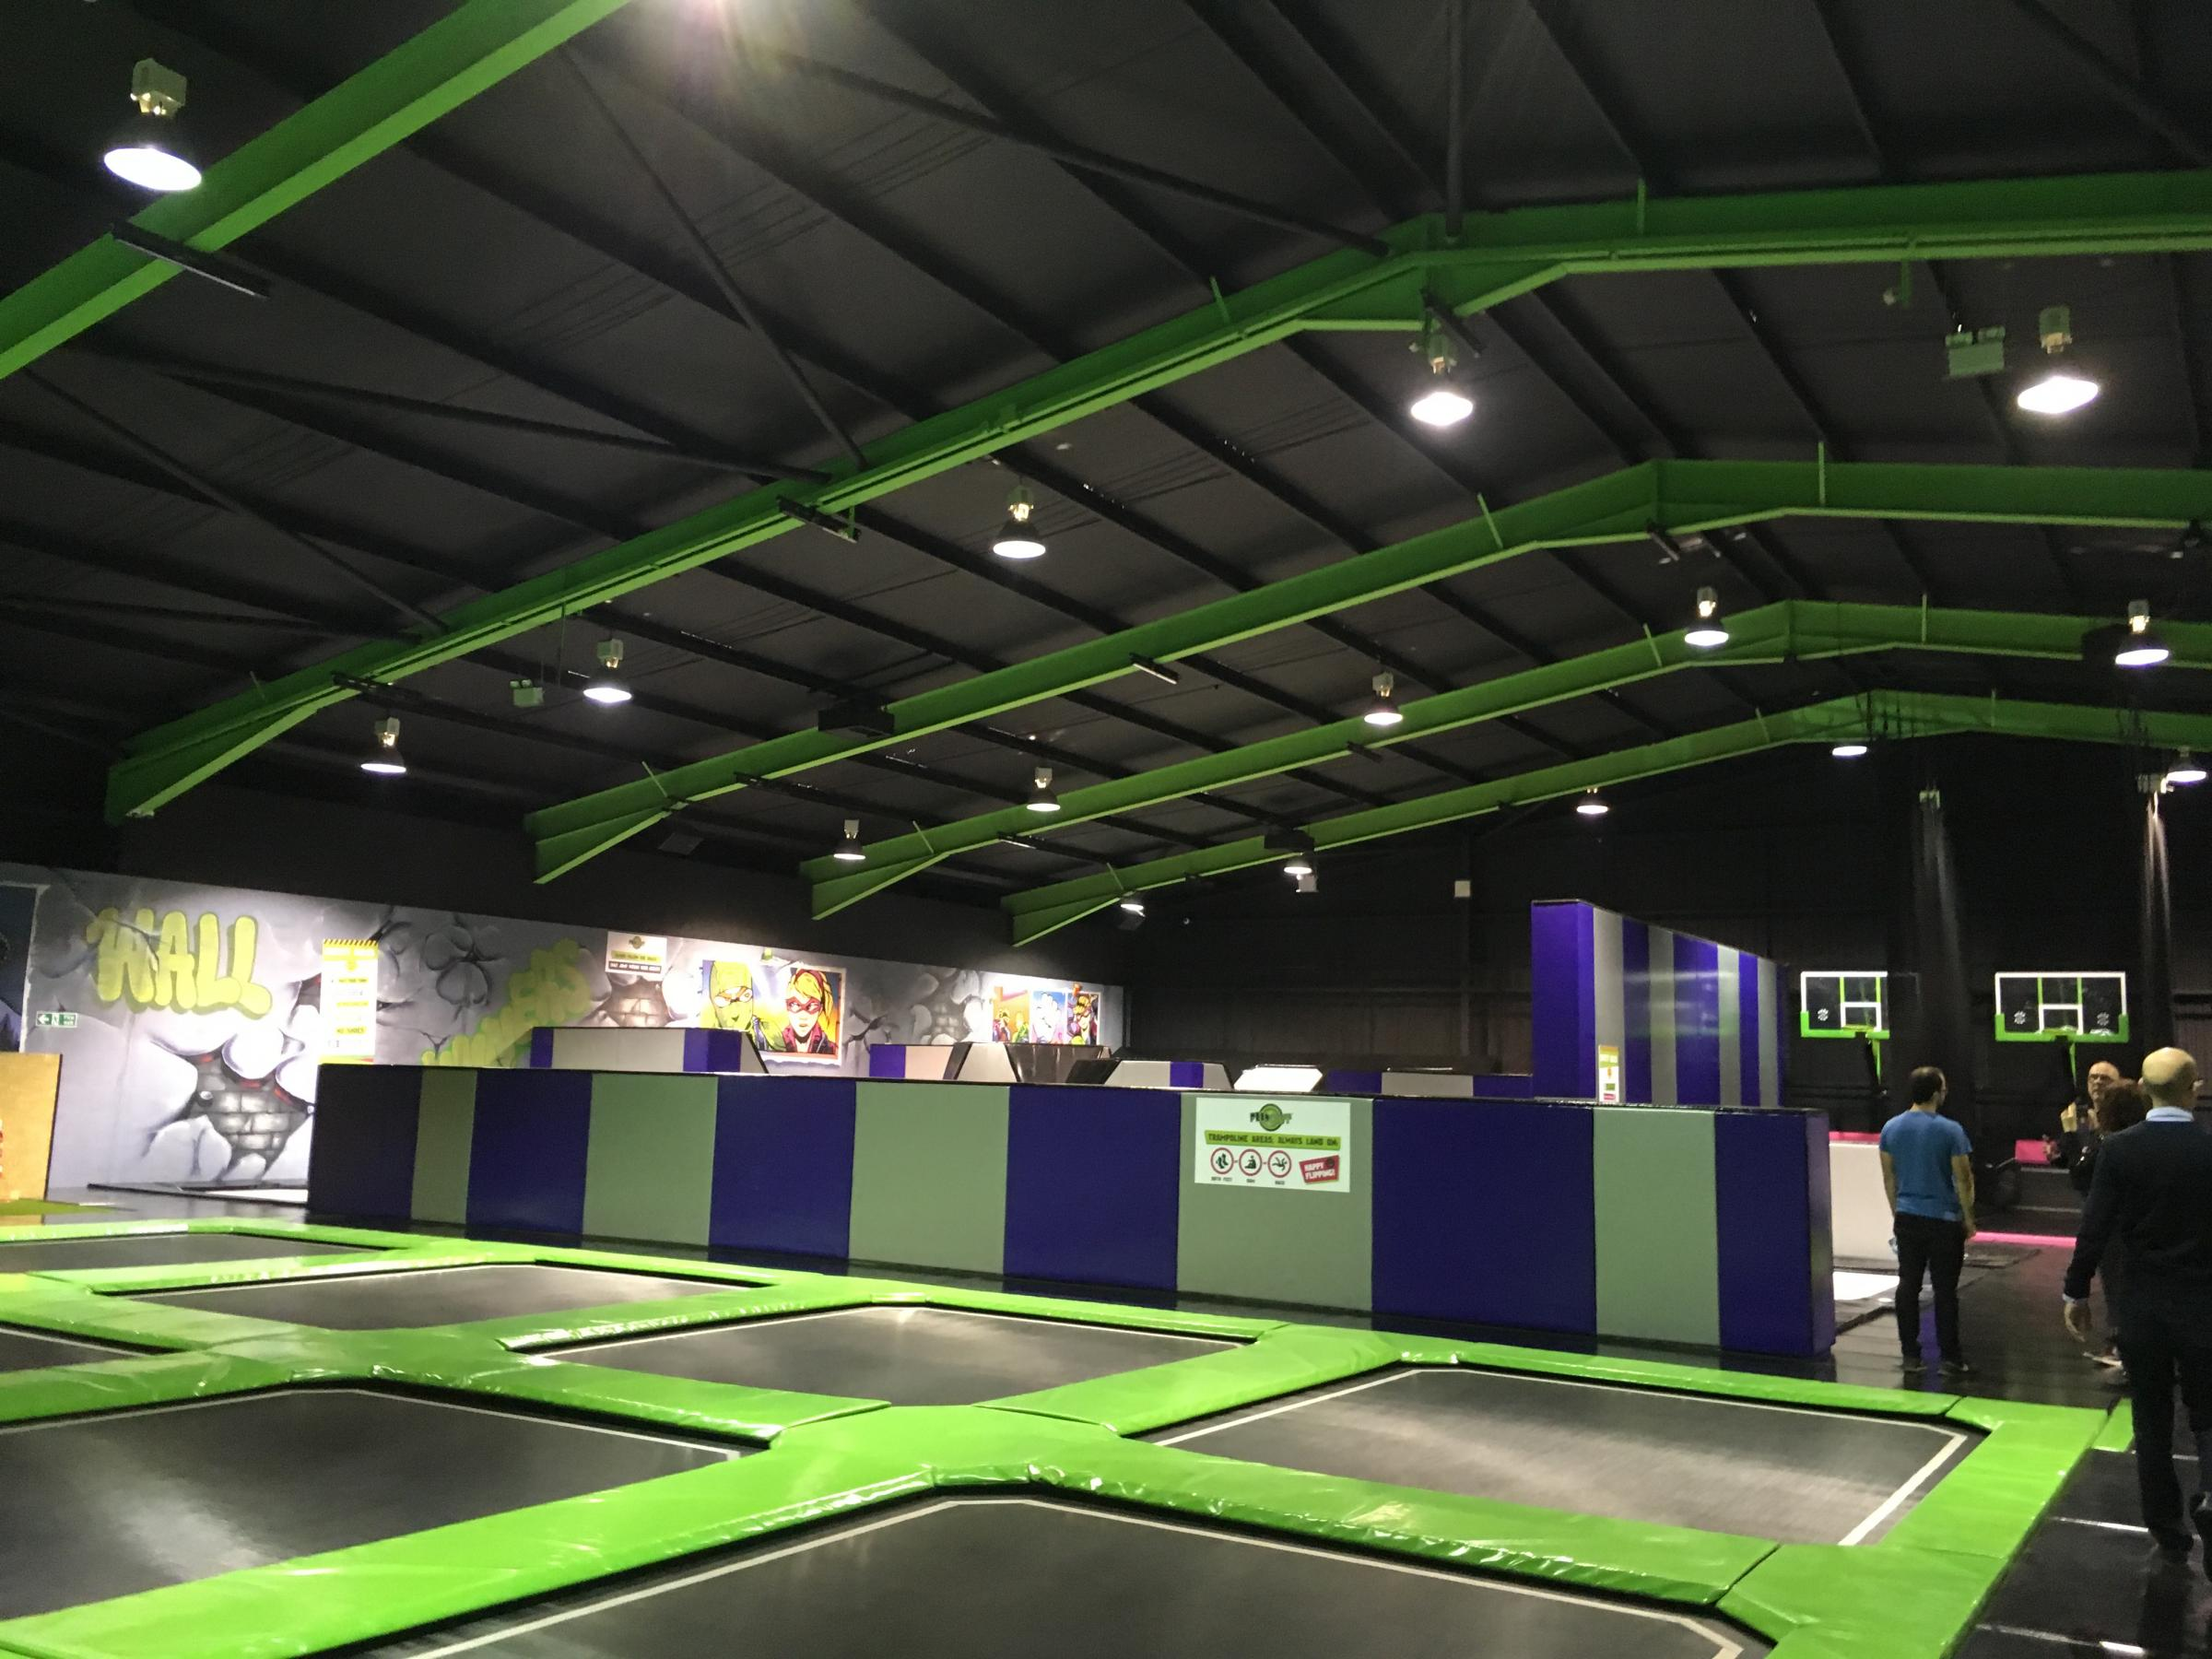 FlipOut Somerset based at Chelston Business Park